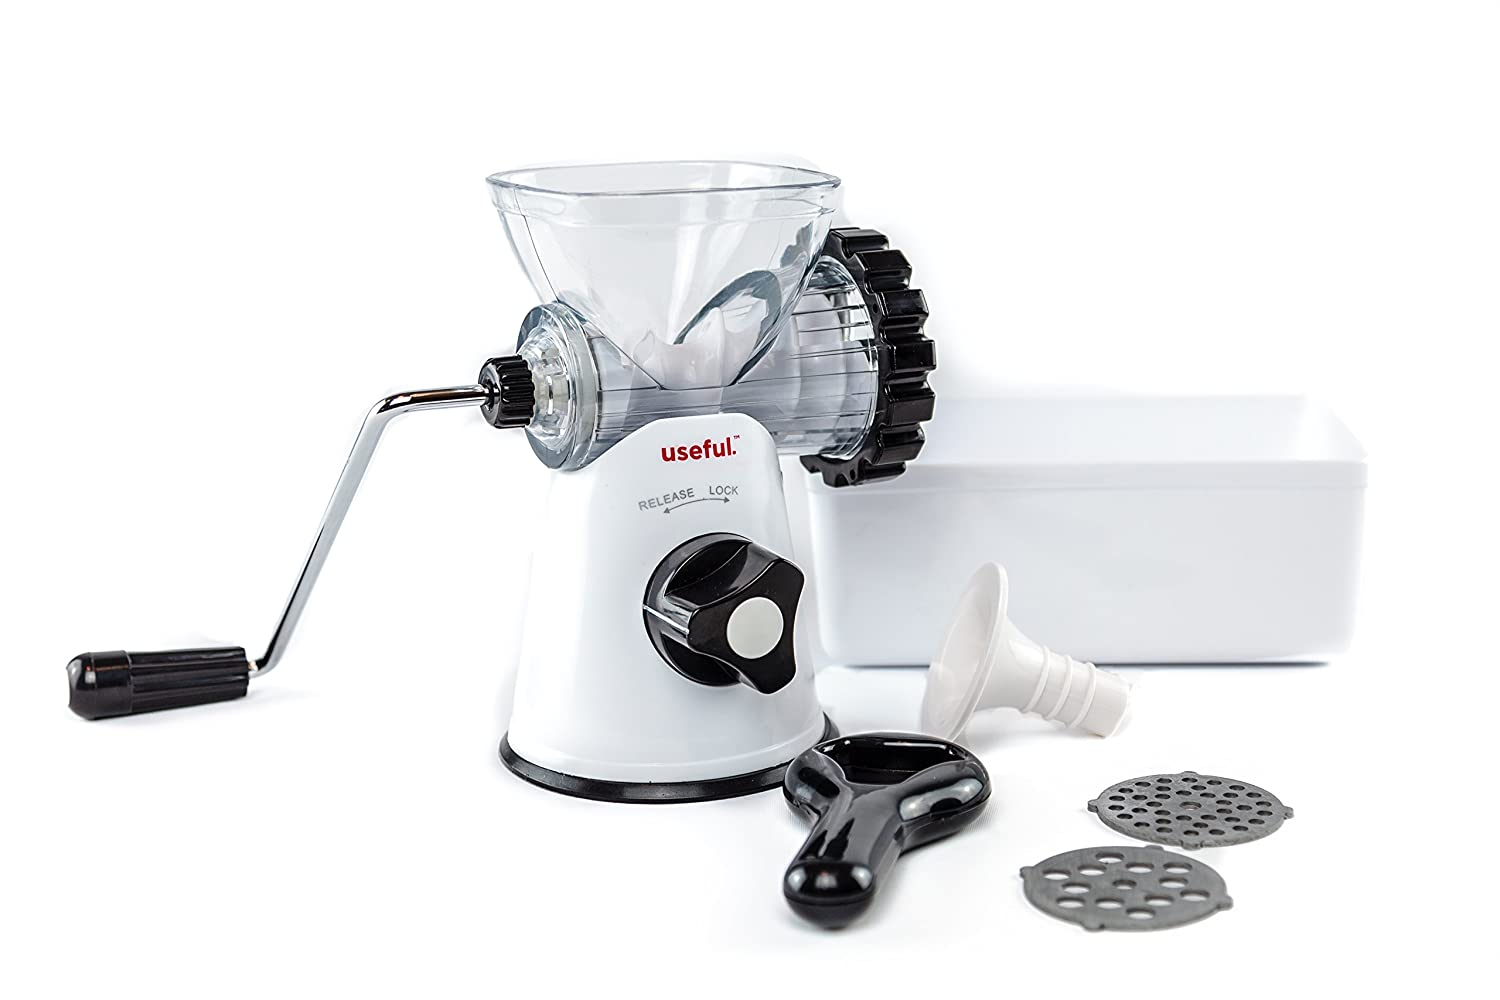 Top 5 Best Manual Meat Grinders For Your Home Kitchen 10